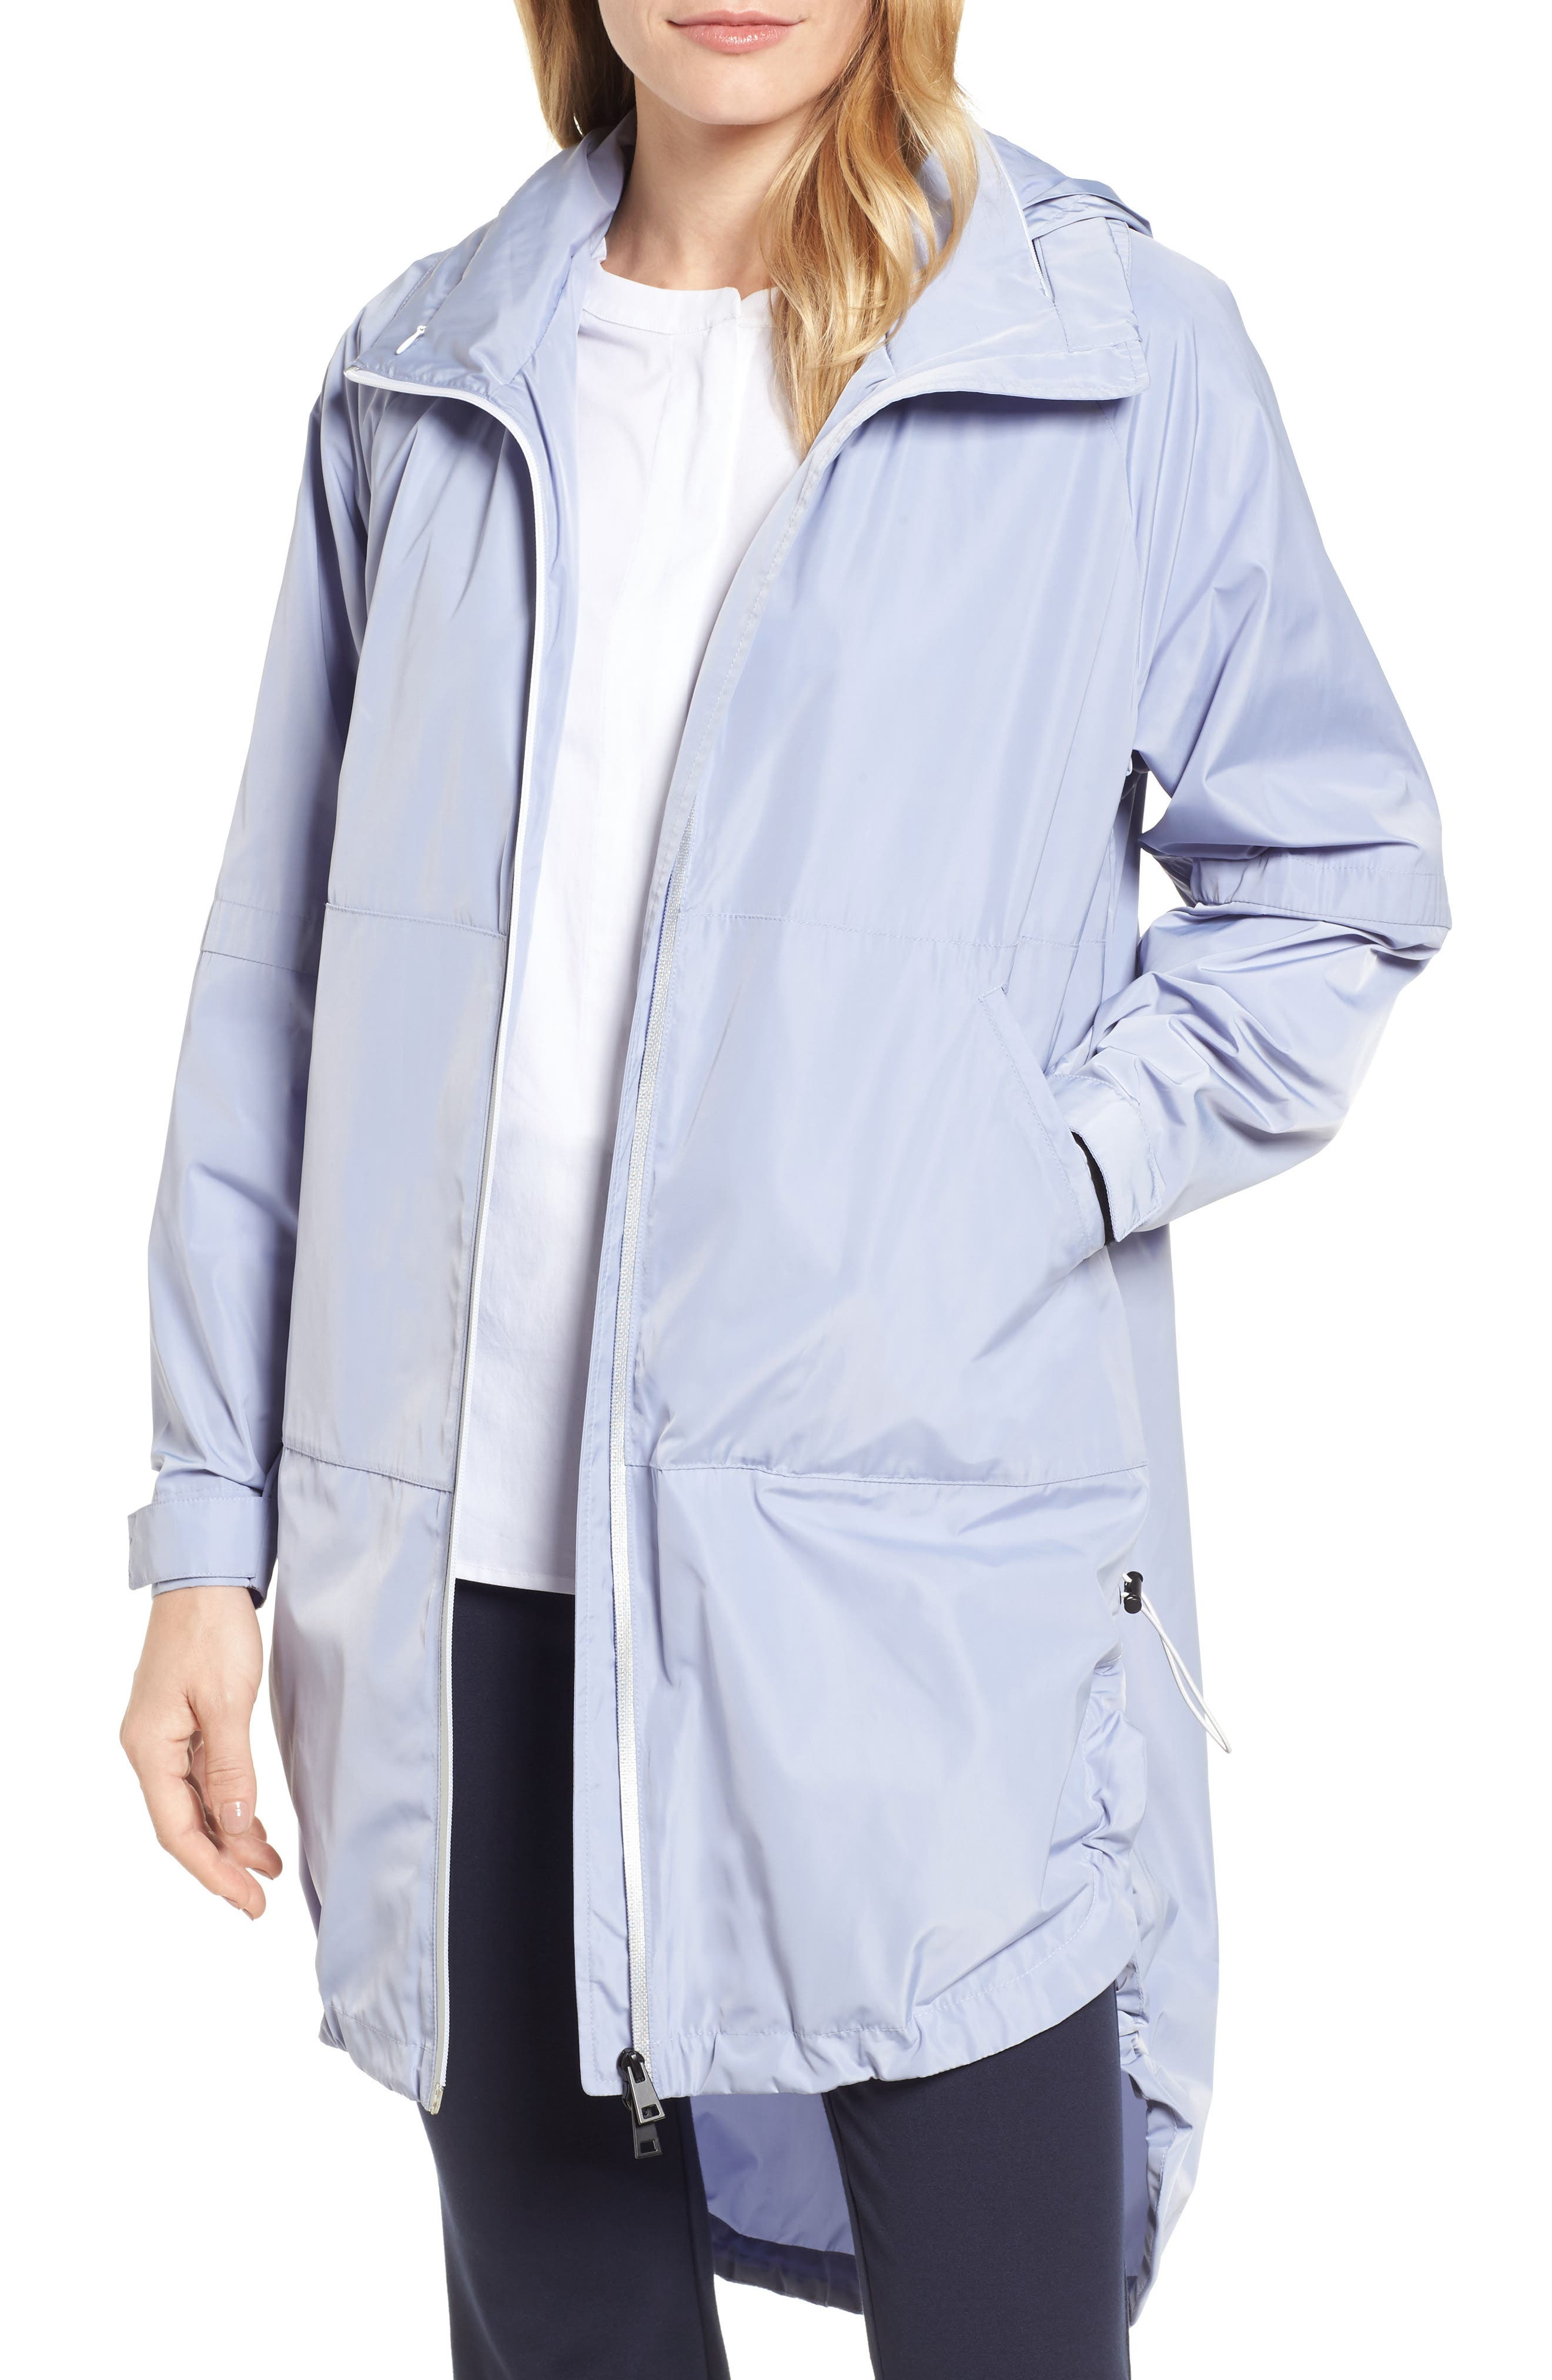 Poly-Luxe Packable Oversize Jacket,                             Main thumbnail 2, color,